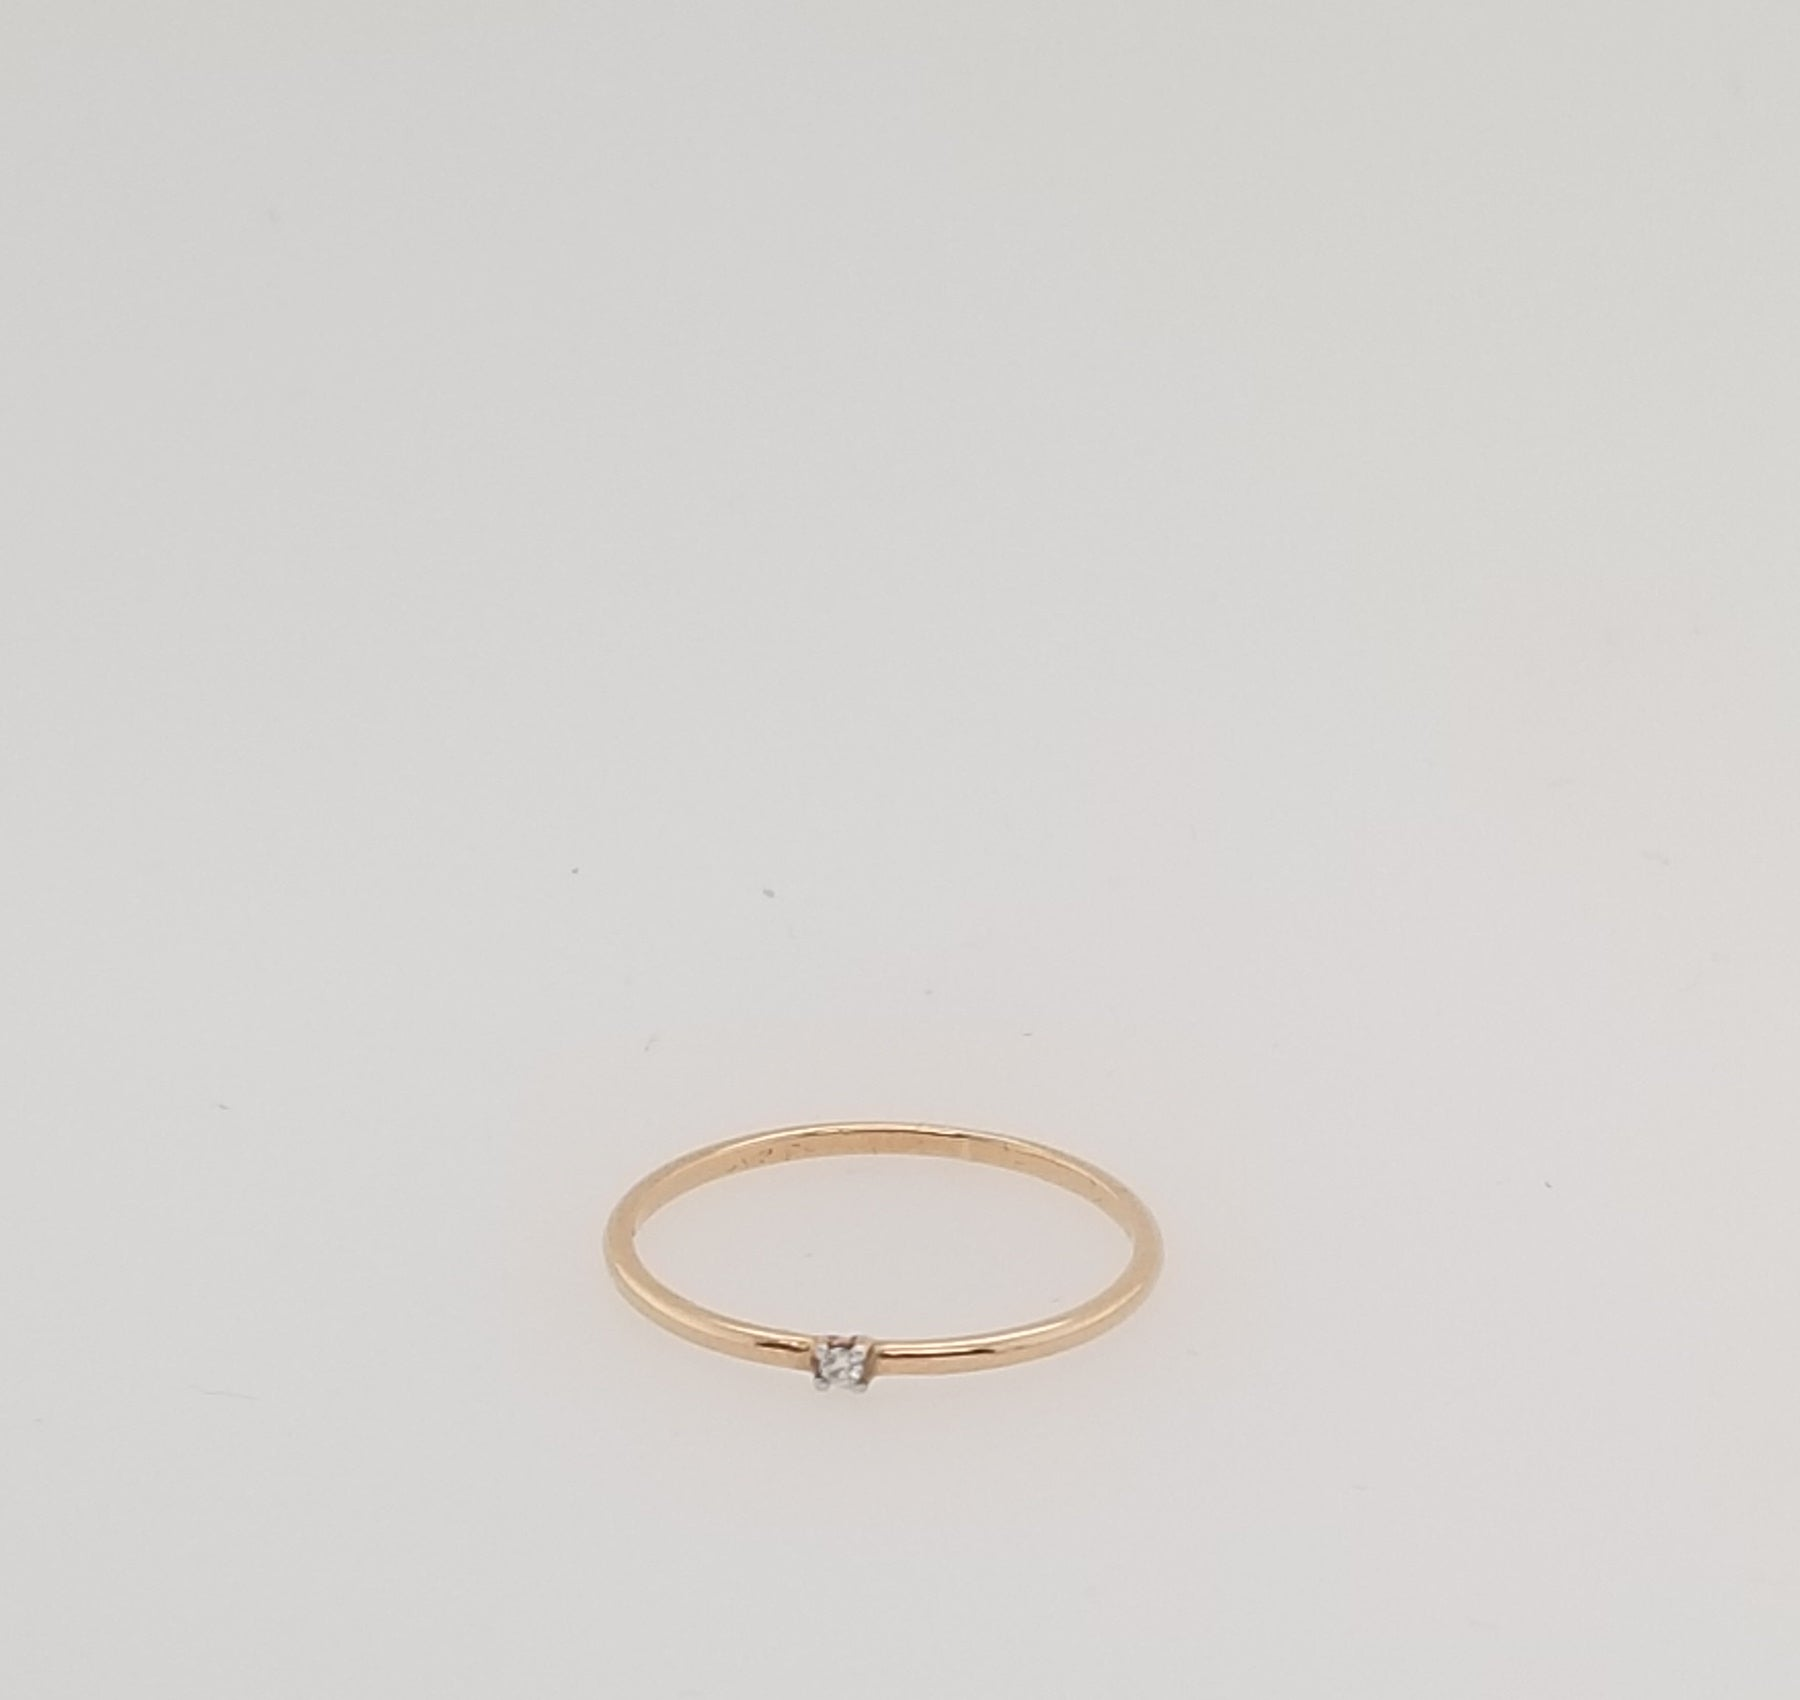 Gold & Diamond Ring E